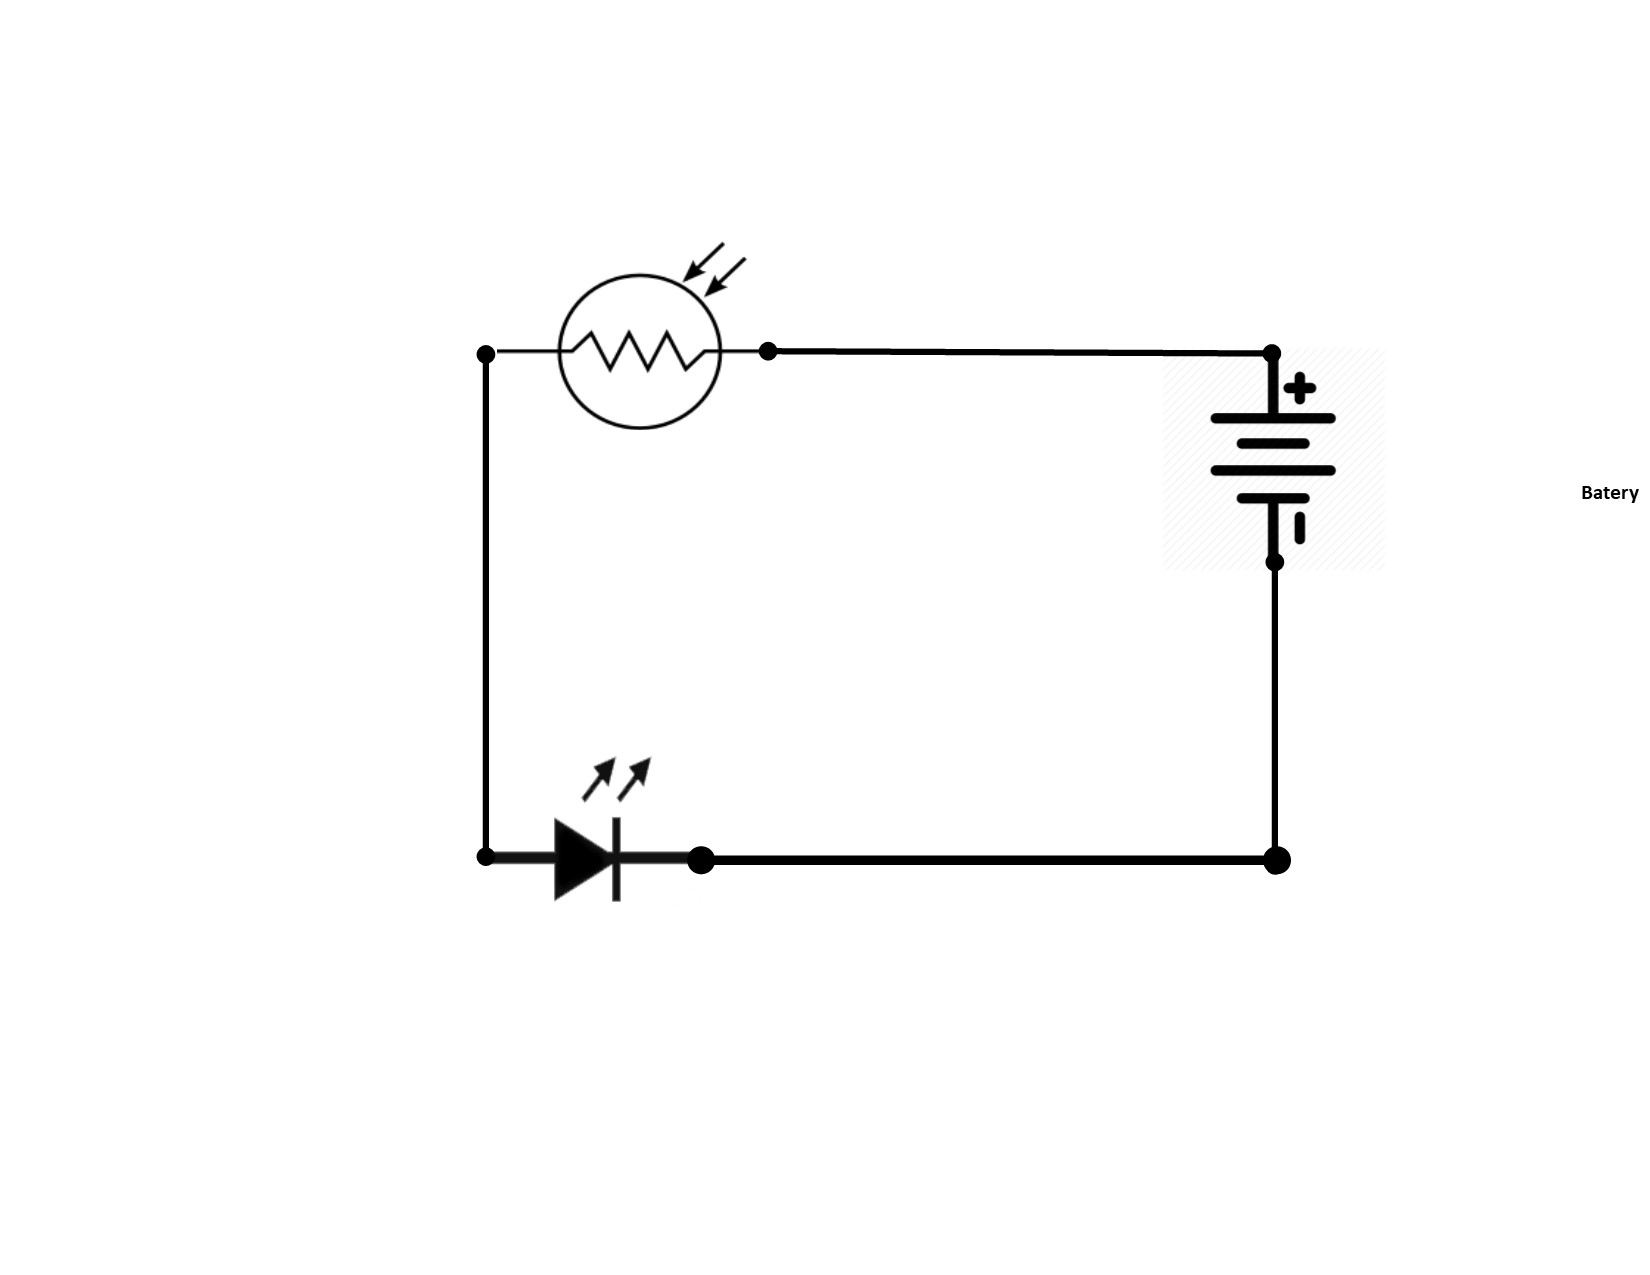 Basic Of Resistor For Beginners Electronics Video Course Urdu Ldr Circuit Diagram 9v Project With Trimmer And Photo